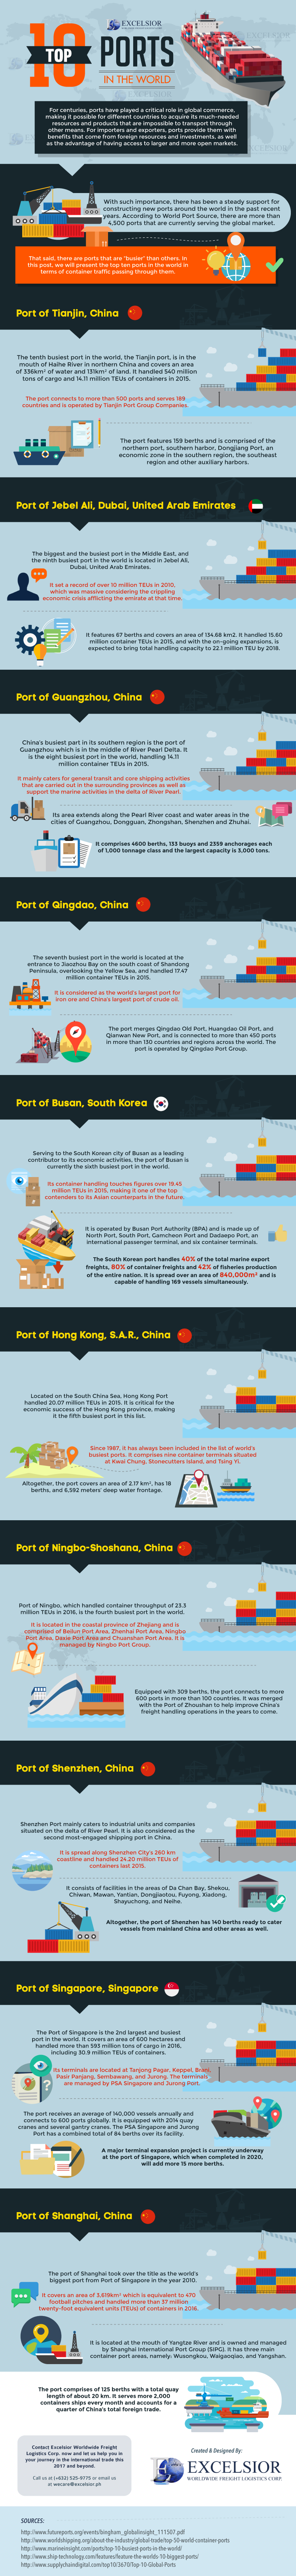 The 10 Busiest Ports in the World - Infographic